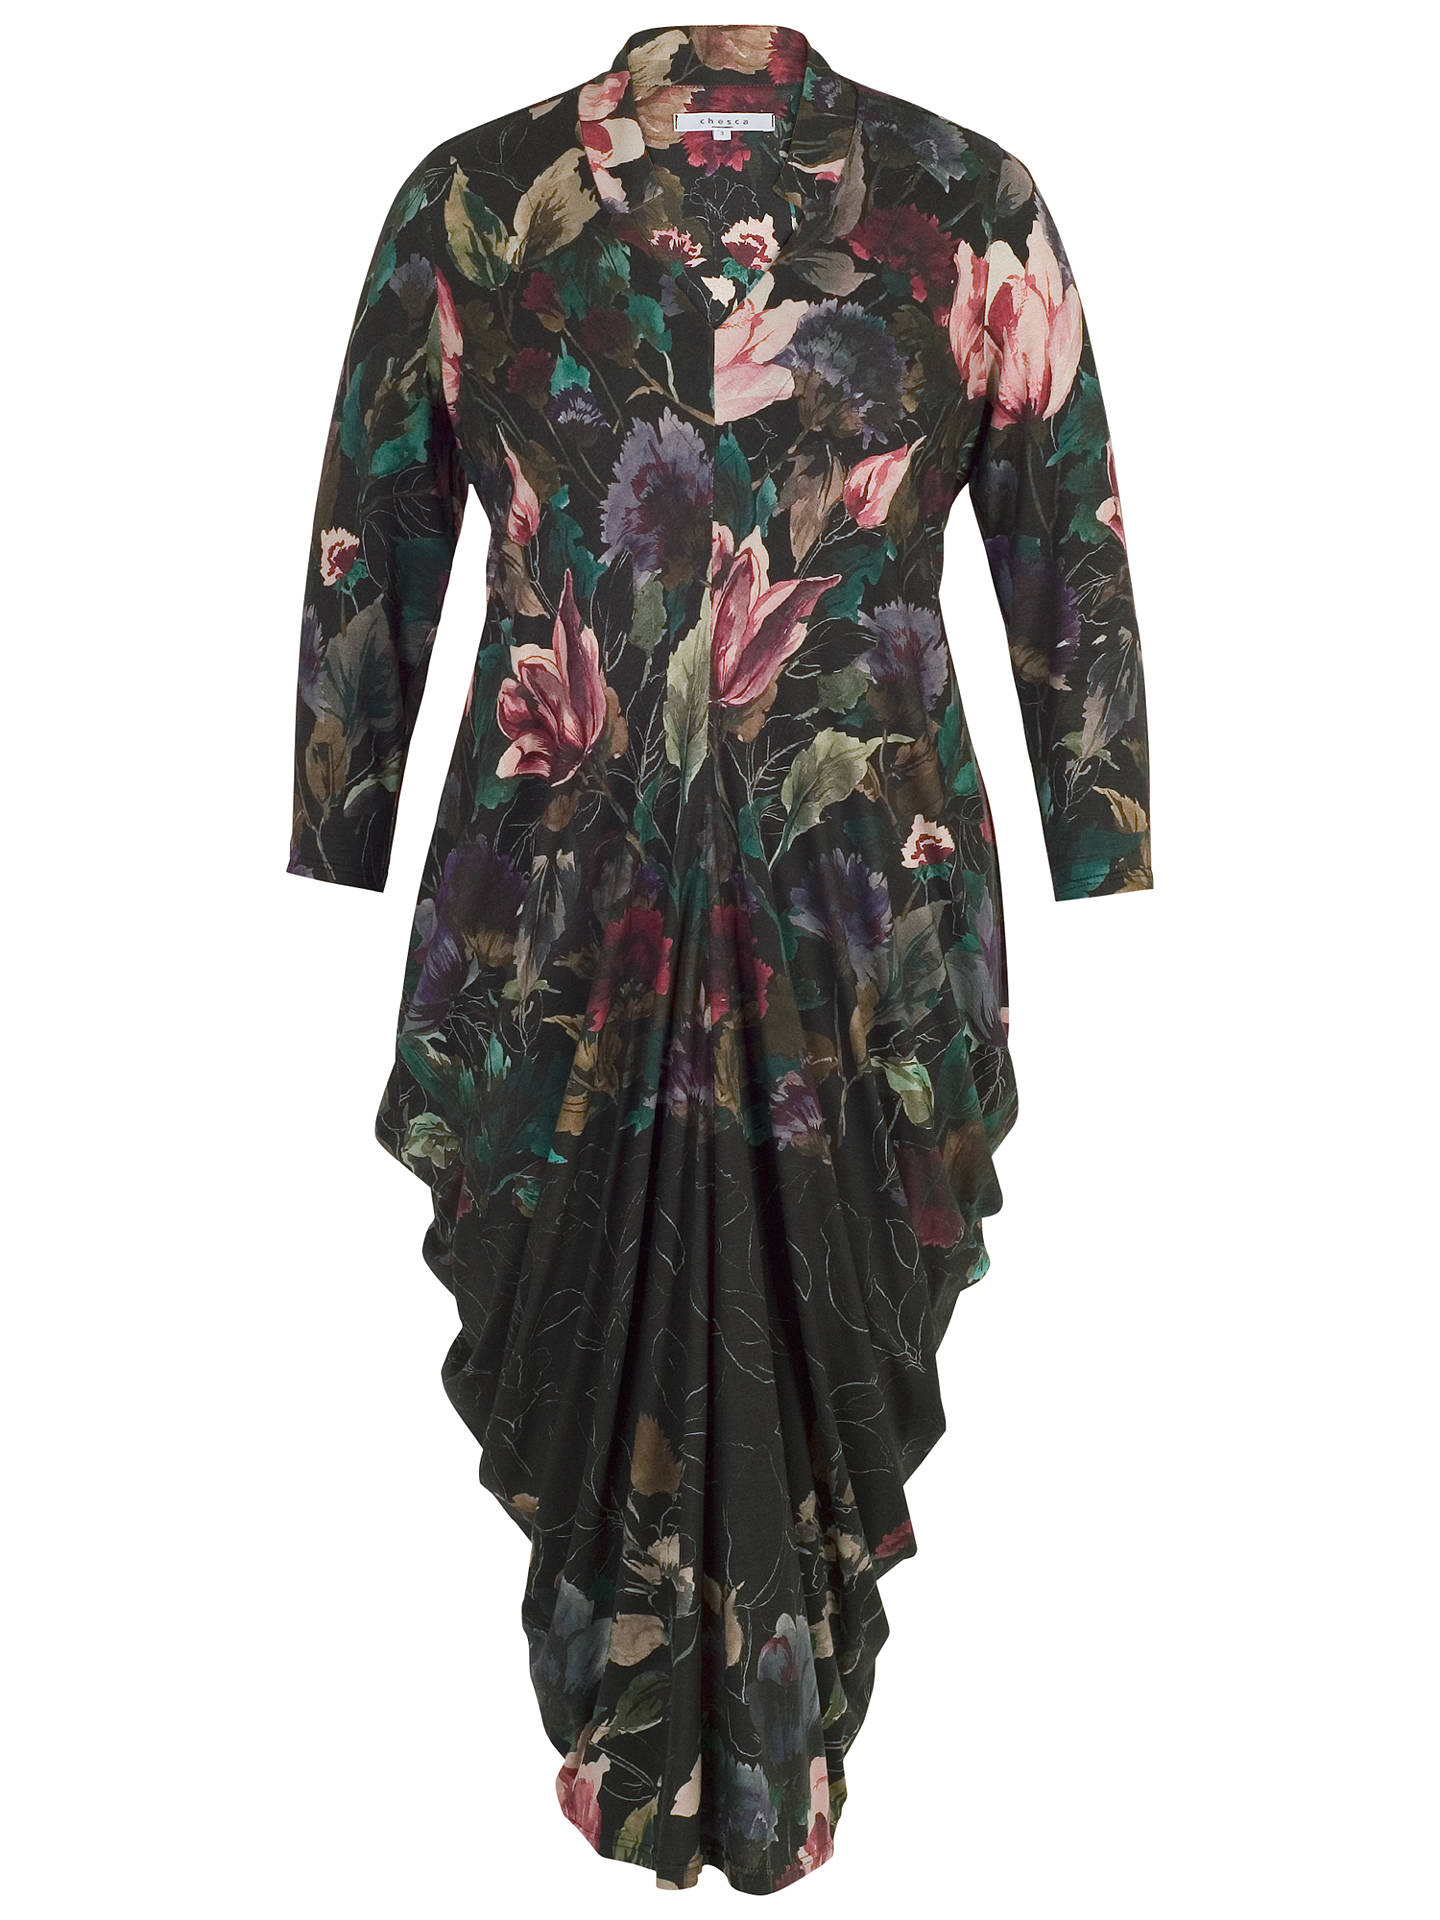 Buy Chesca Floral Border Print Jersey Dress, Black/Multi, 12-14 Online at johnlewis.com